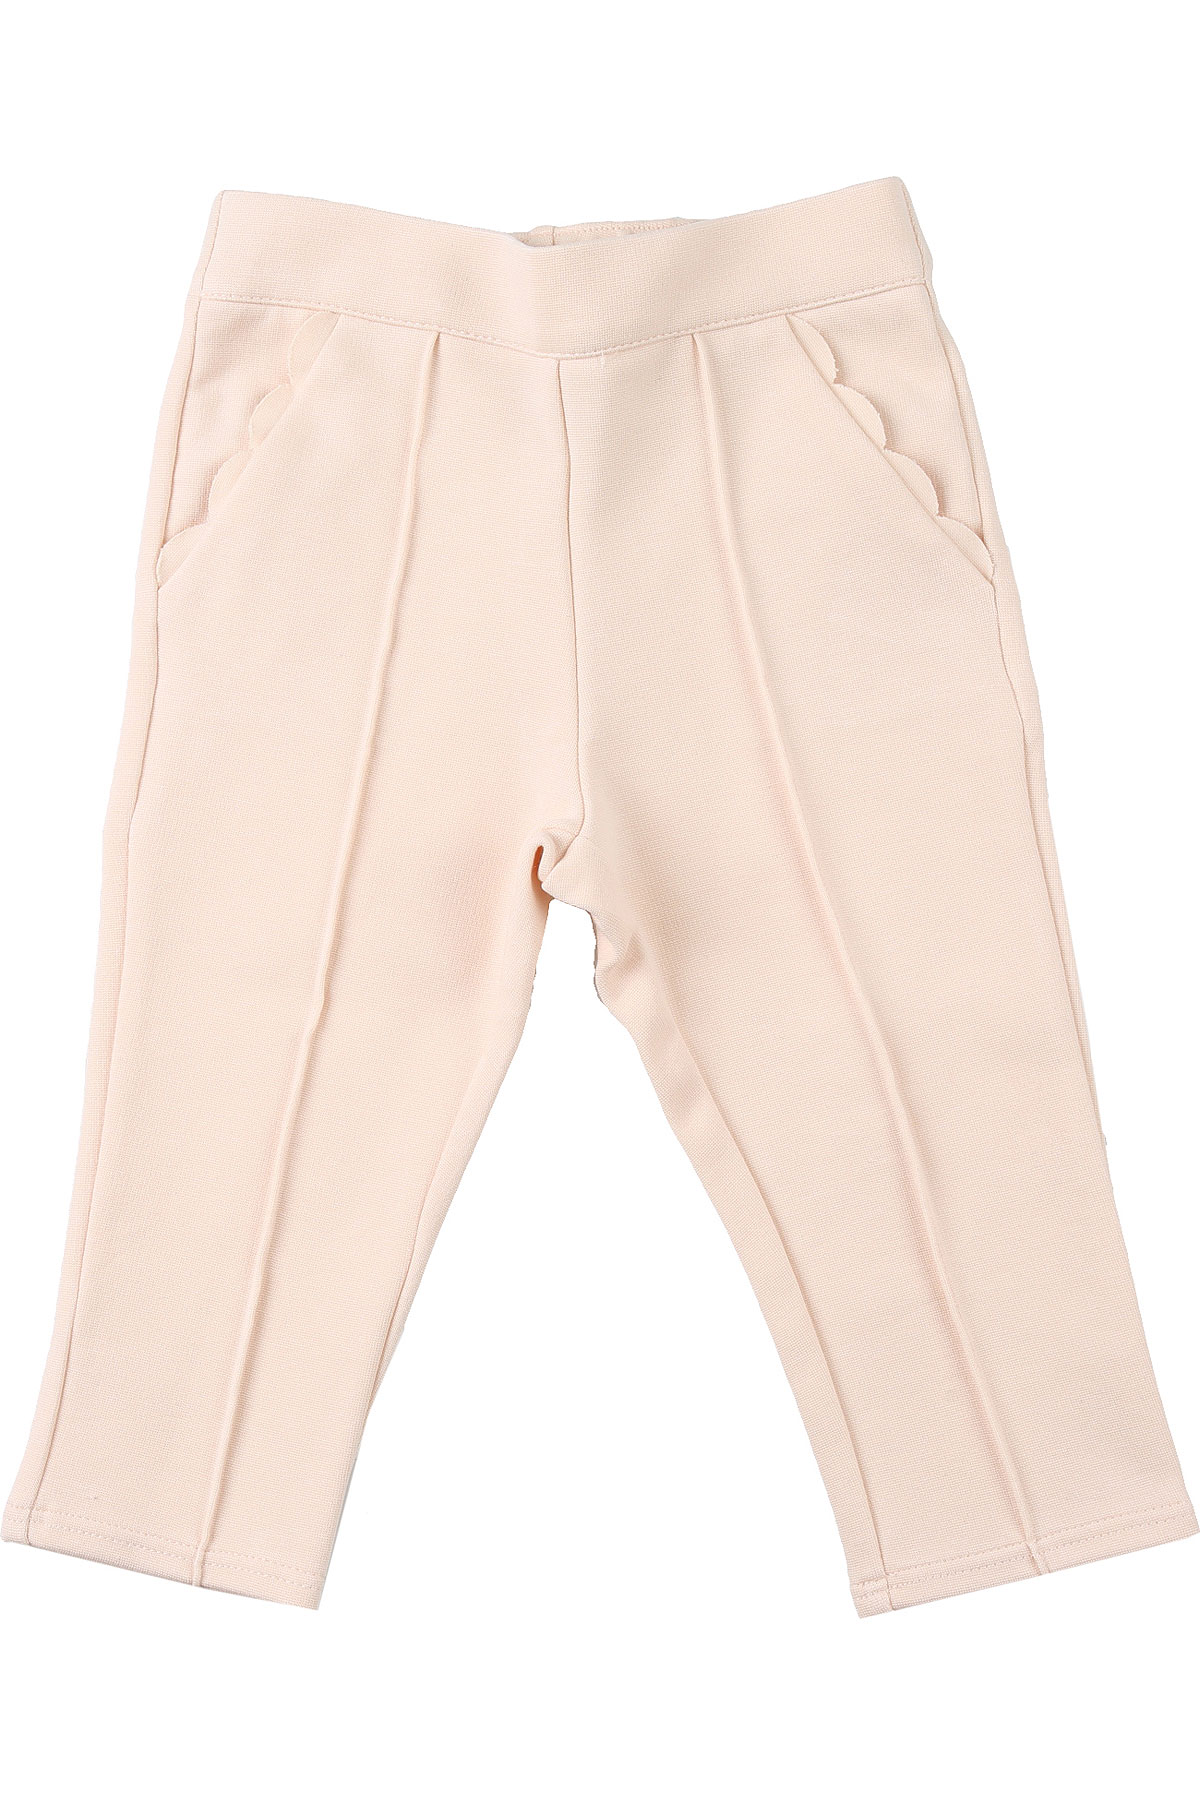 Chloe Baby Pants for Girls On Sale, Powder Rose, Cotton, 2019, 2Y 6M 9M